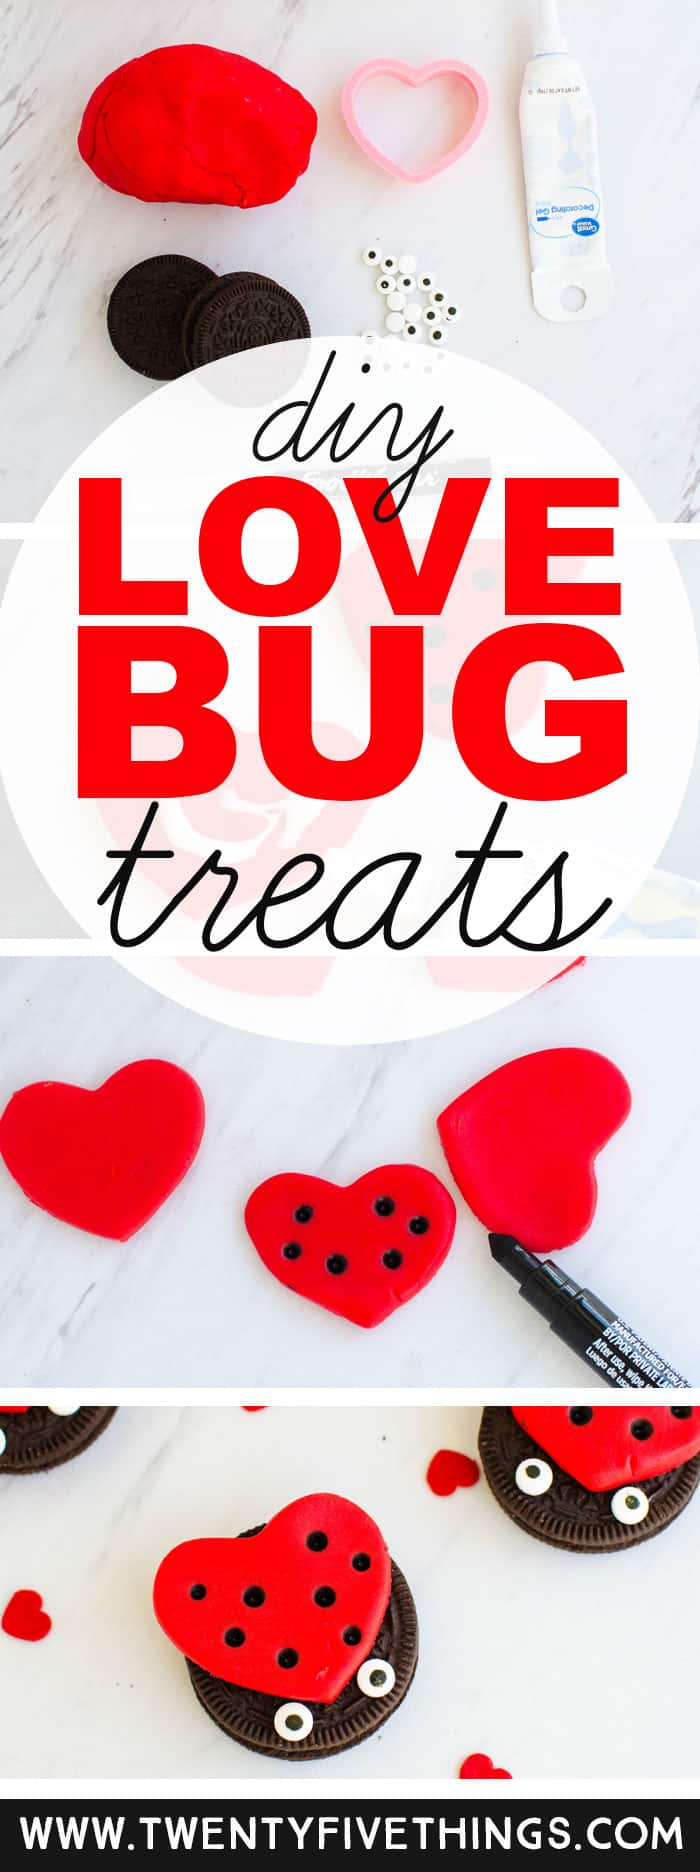 These adorable diy love bug treats are so easy to put together, I made them with my 10 year old! They're perfect for a simple Valentine's Day snack, and are cute enough to use for your Valentine's Day party. #ValentinesDay #FoodCraft #LoveBug